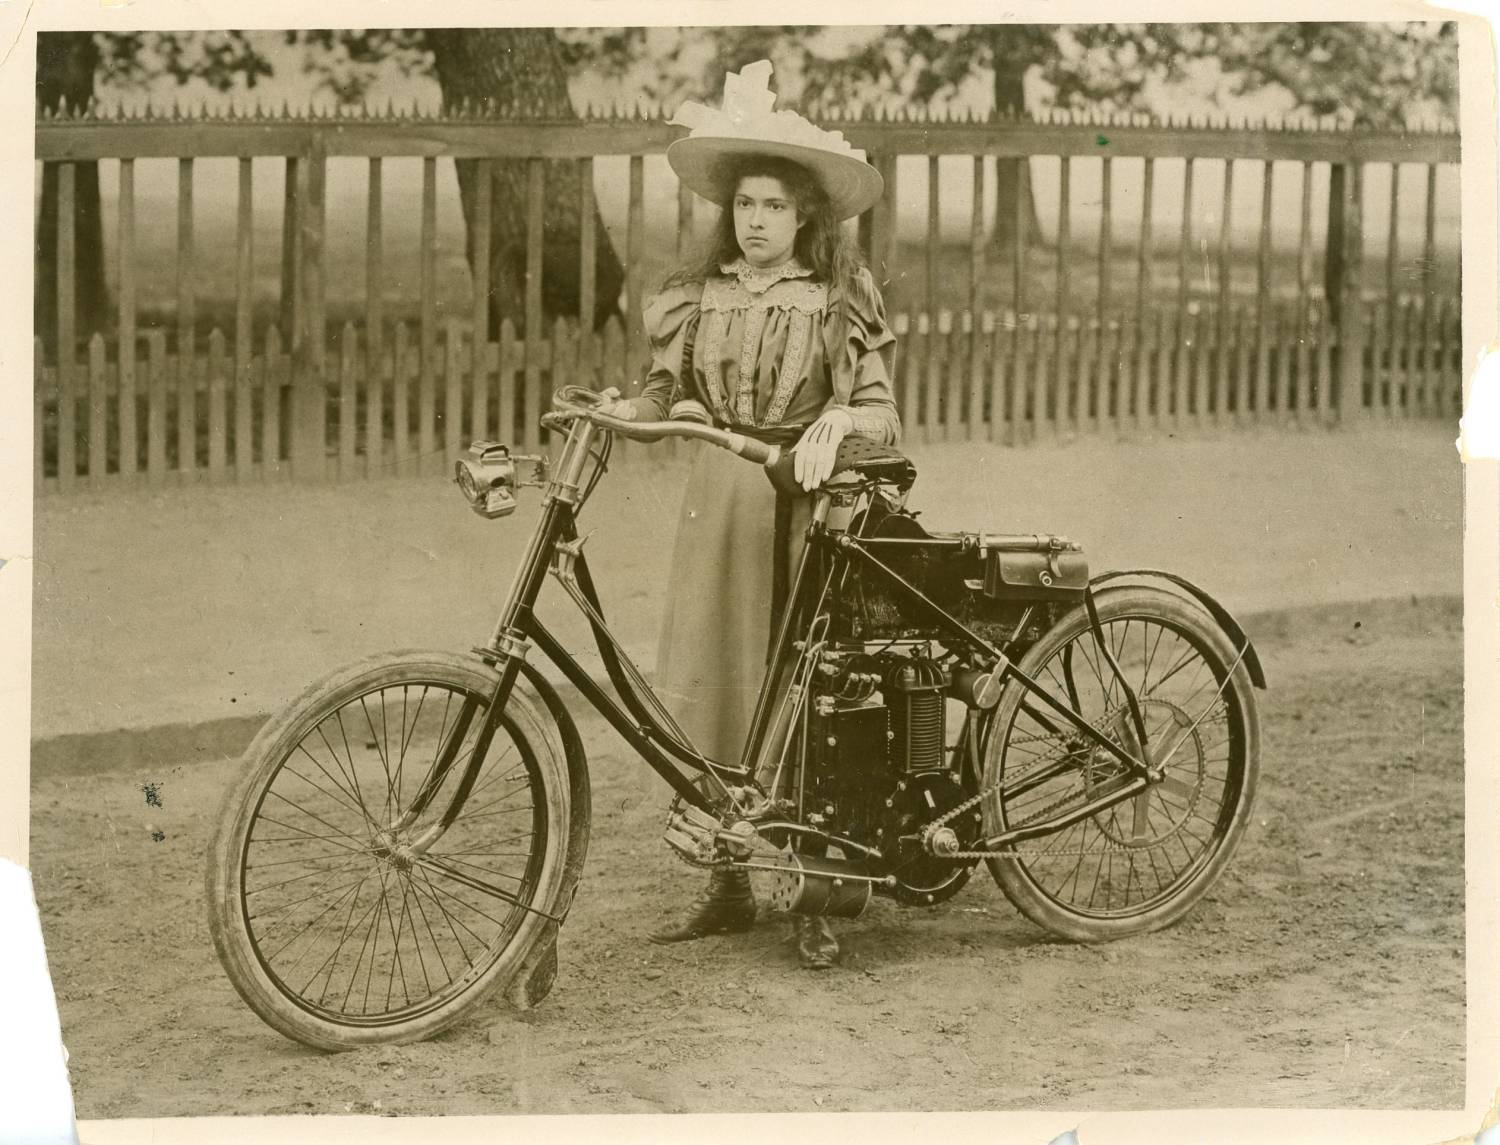 Lawson's motorcycle held by Kitty's mother in 1908